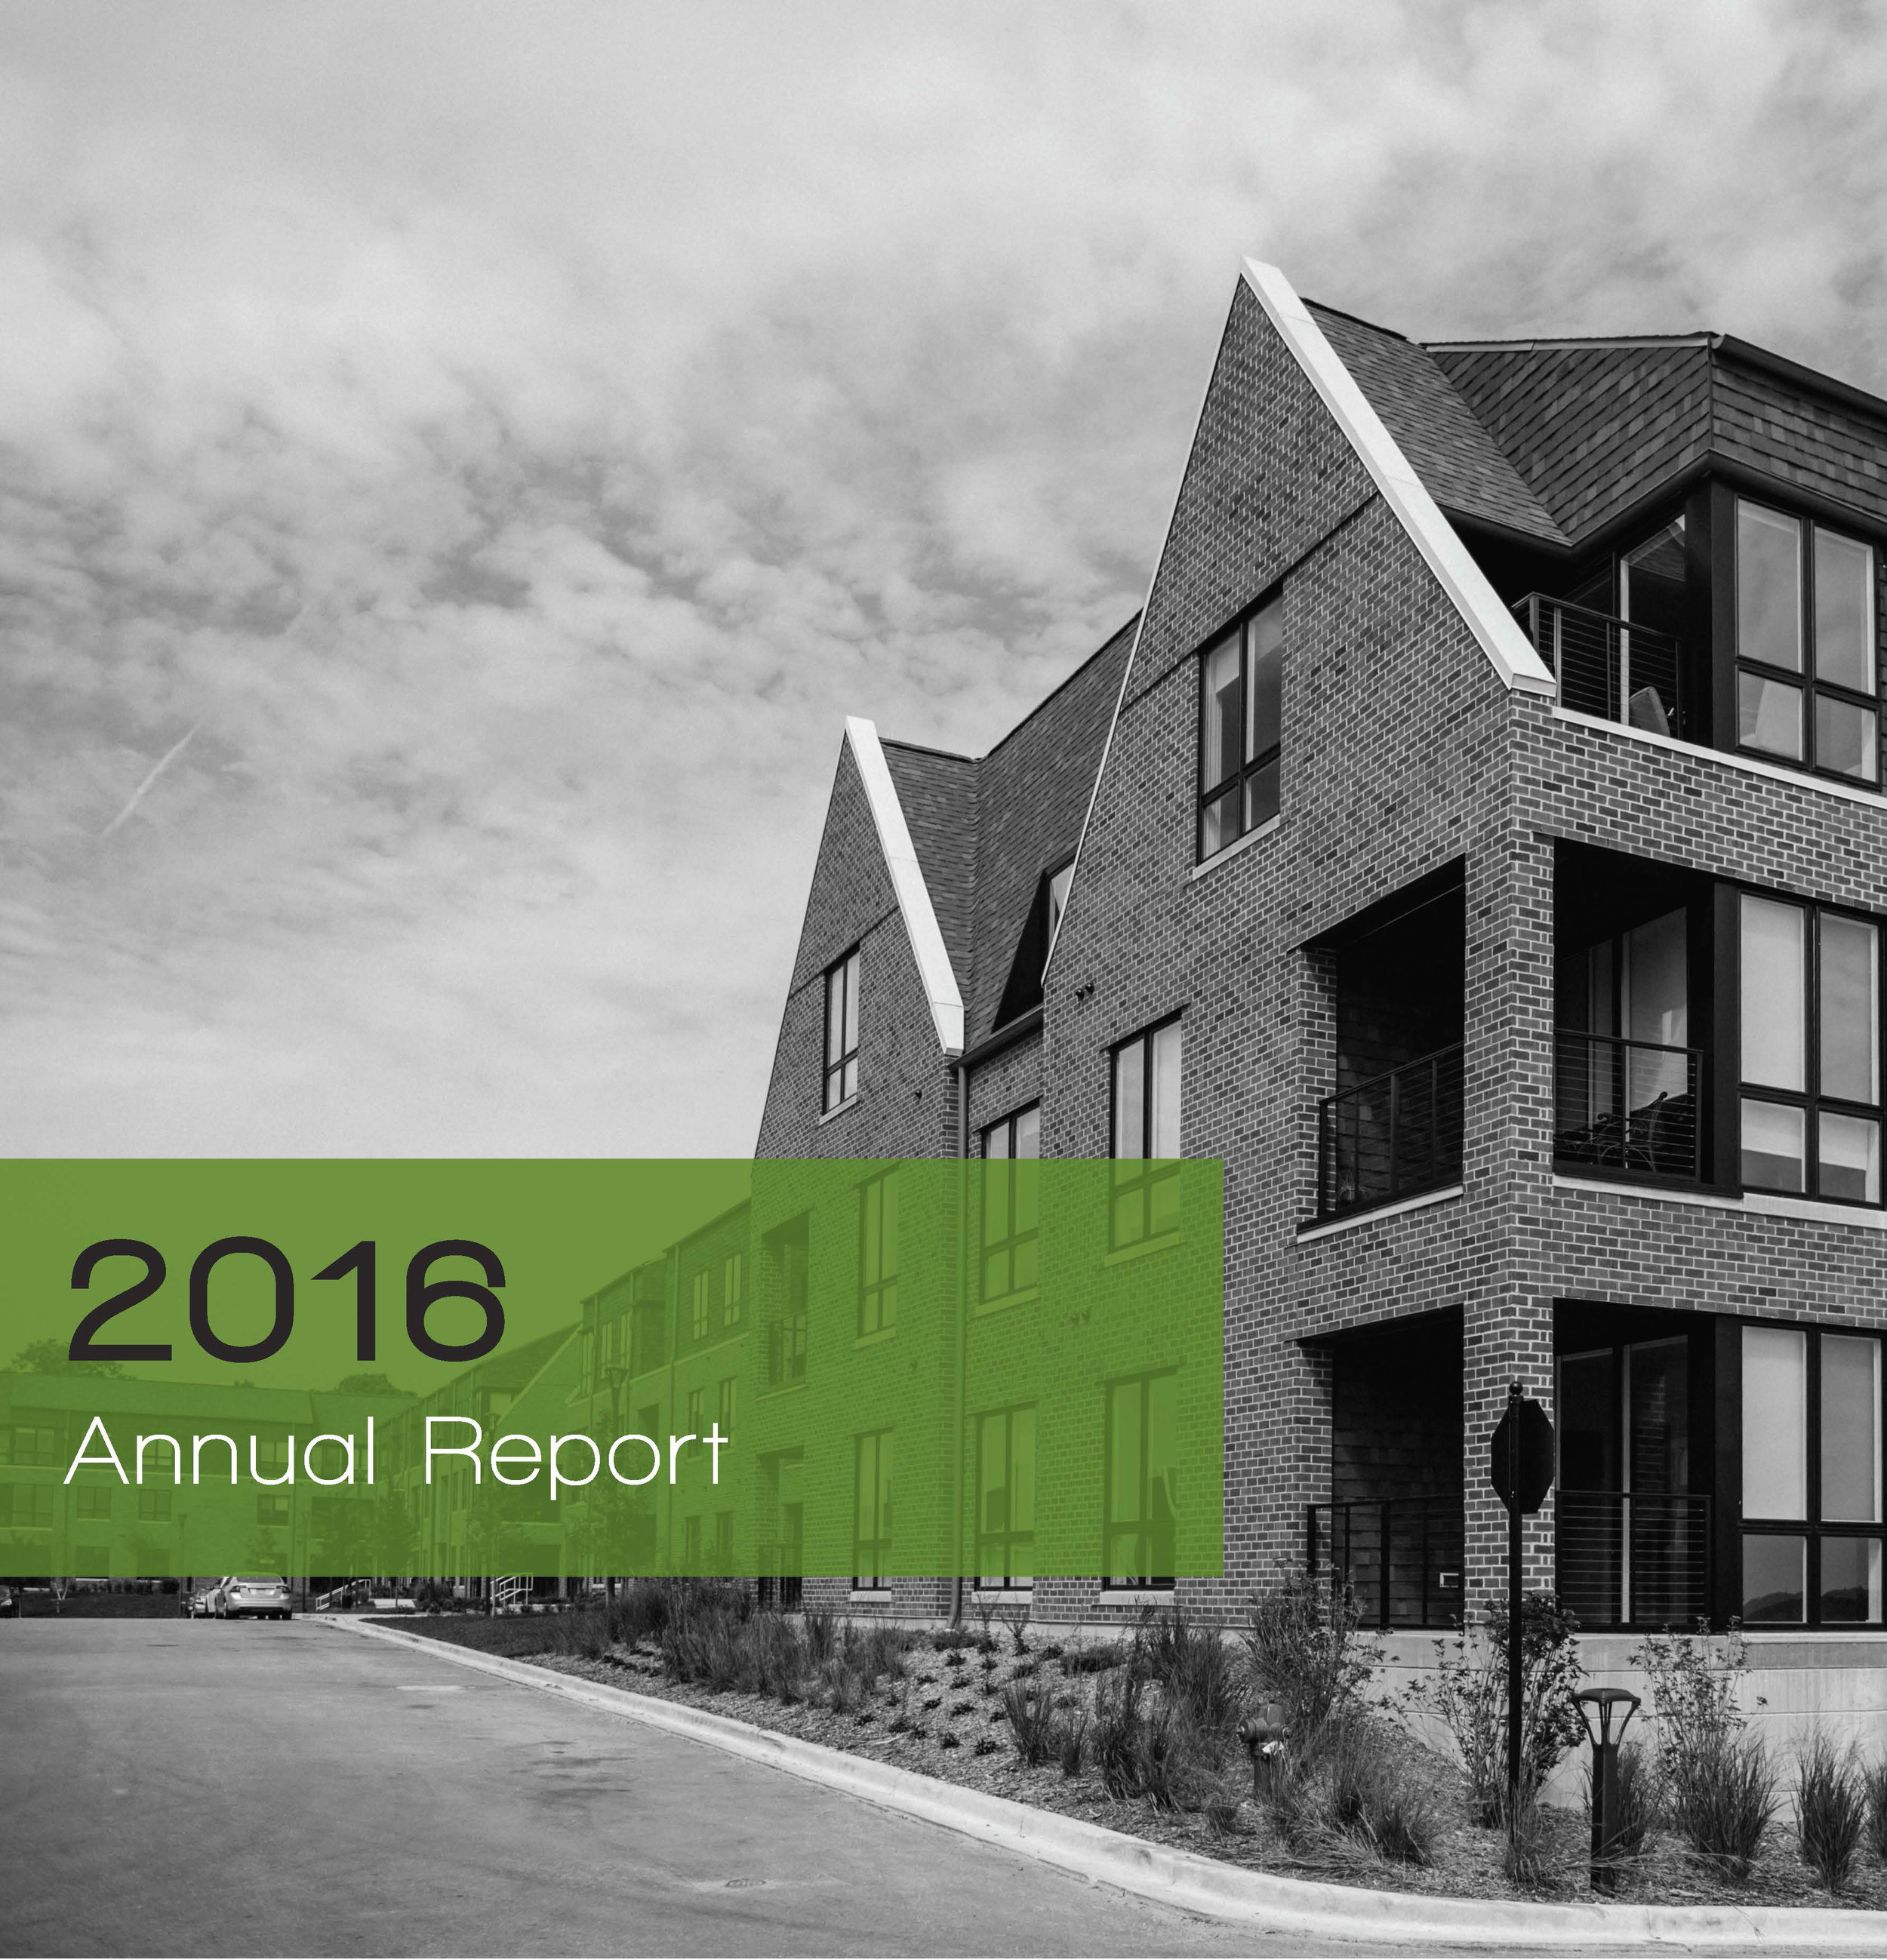 2016 Annual Report Cover_web.jpg